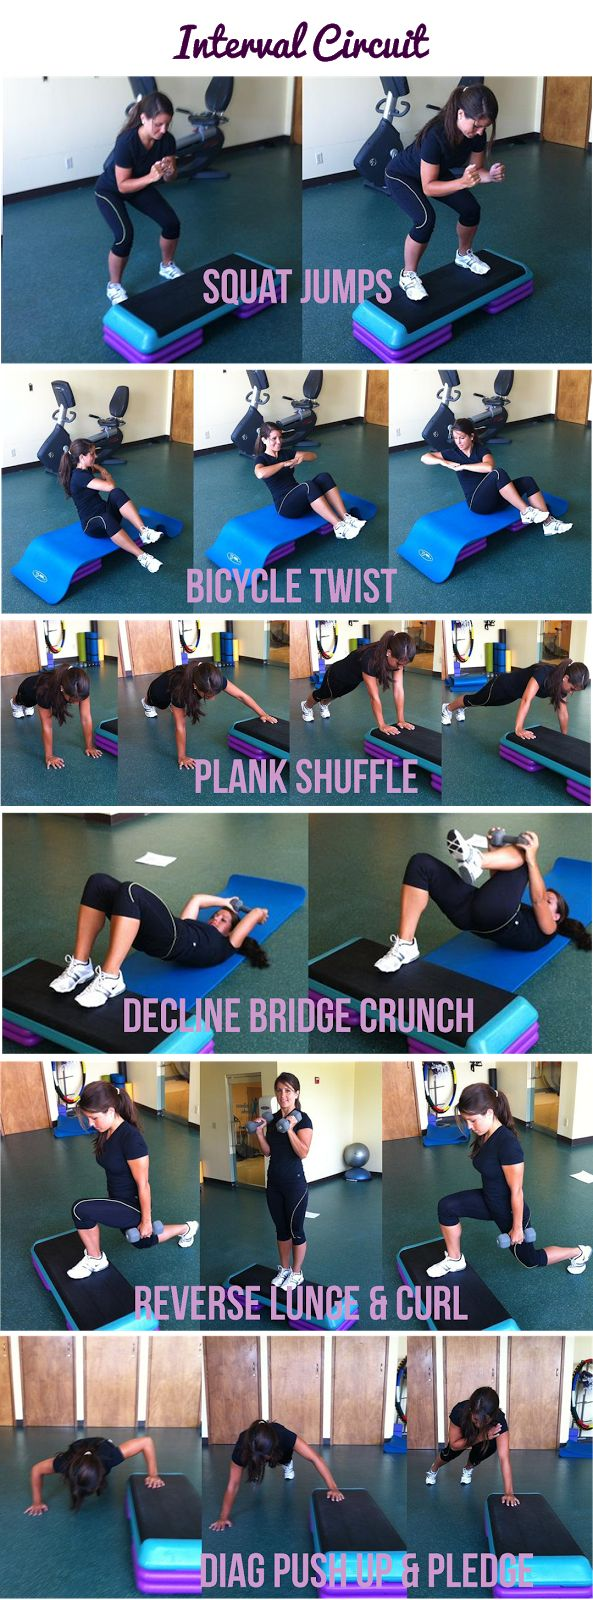 Quick interval circuit workout using a step and 2 weights